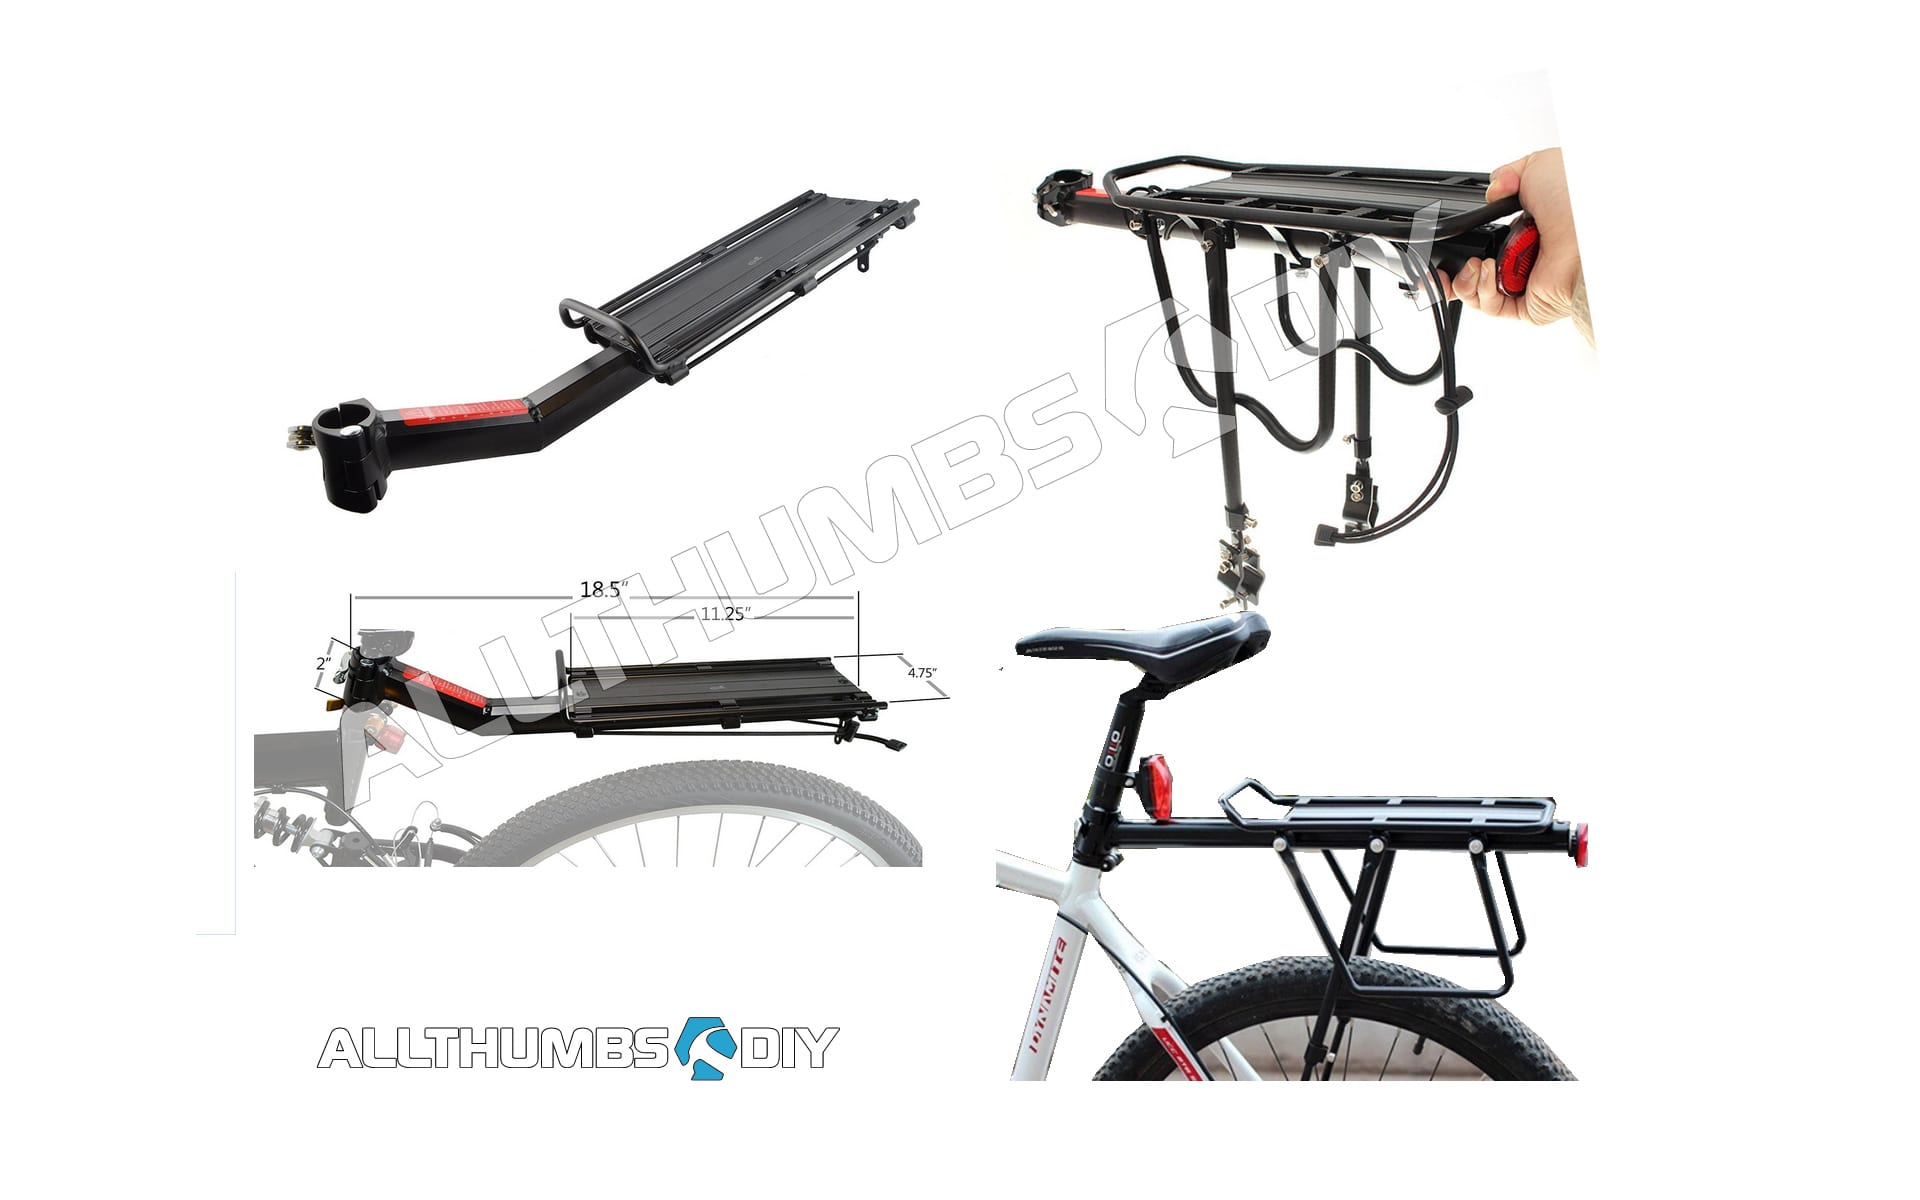 Allthumbsdiy Bike Rack Review Tray Seat Post Vs Tray Only